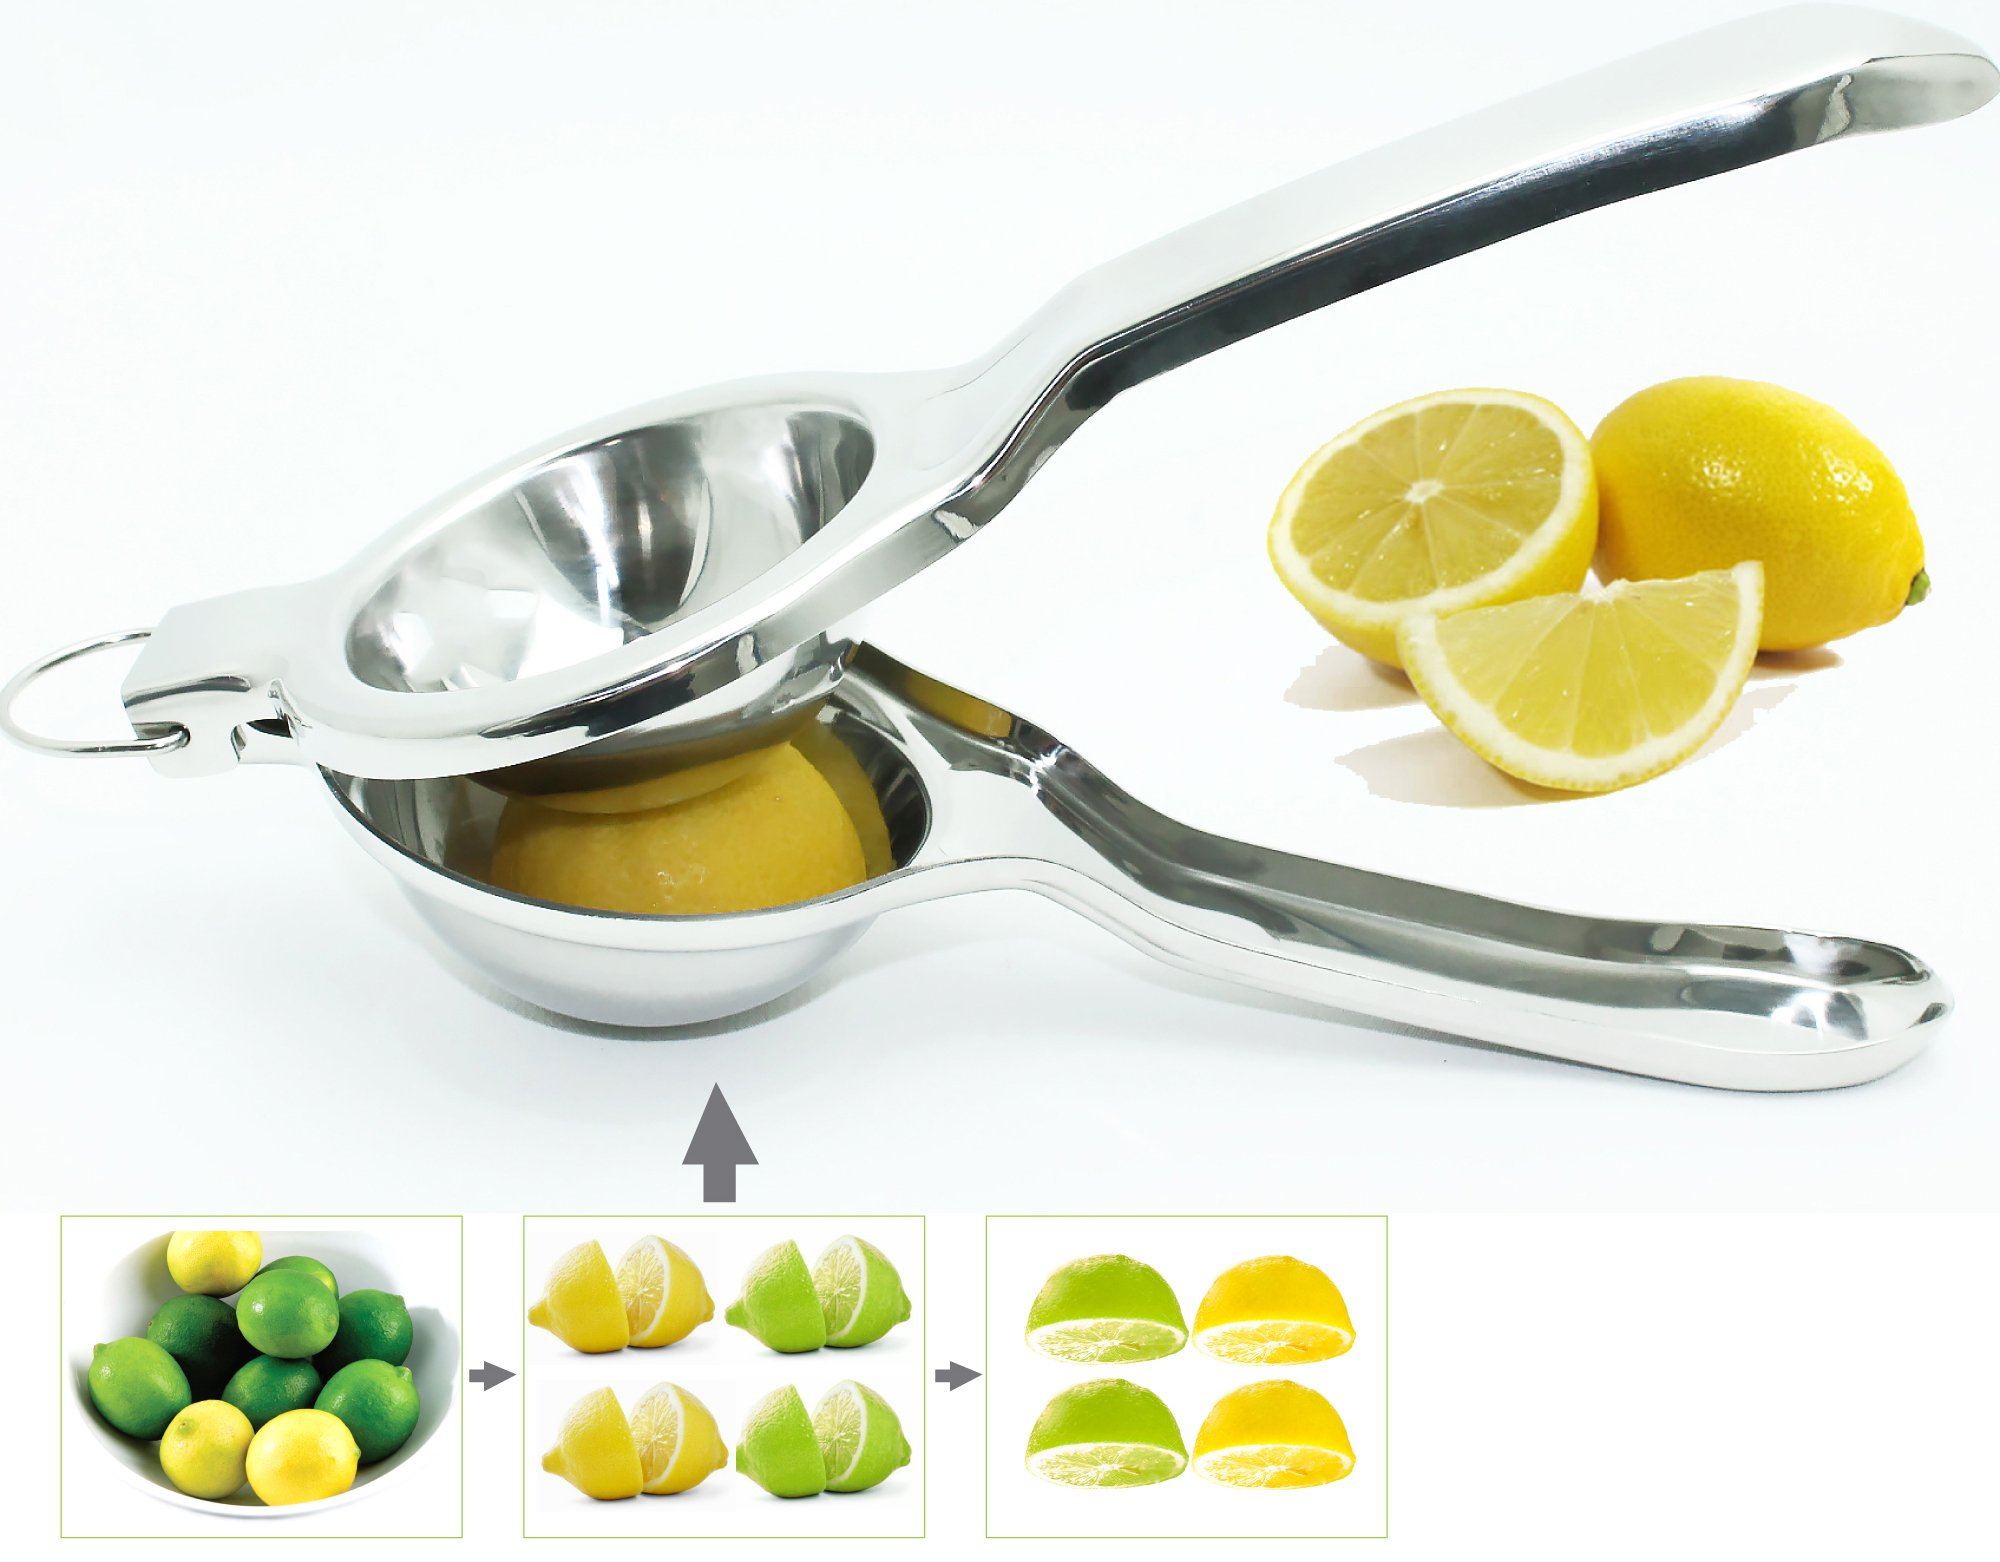 EcoJeannie LS0001 Professional Jumbo Stainless Steel Lemon and Lime Squeezer and Juicer with Free Citrus Tap, 9.25-Inch, Silver by EcoJeannie (Image #2)